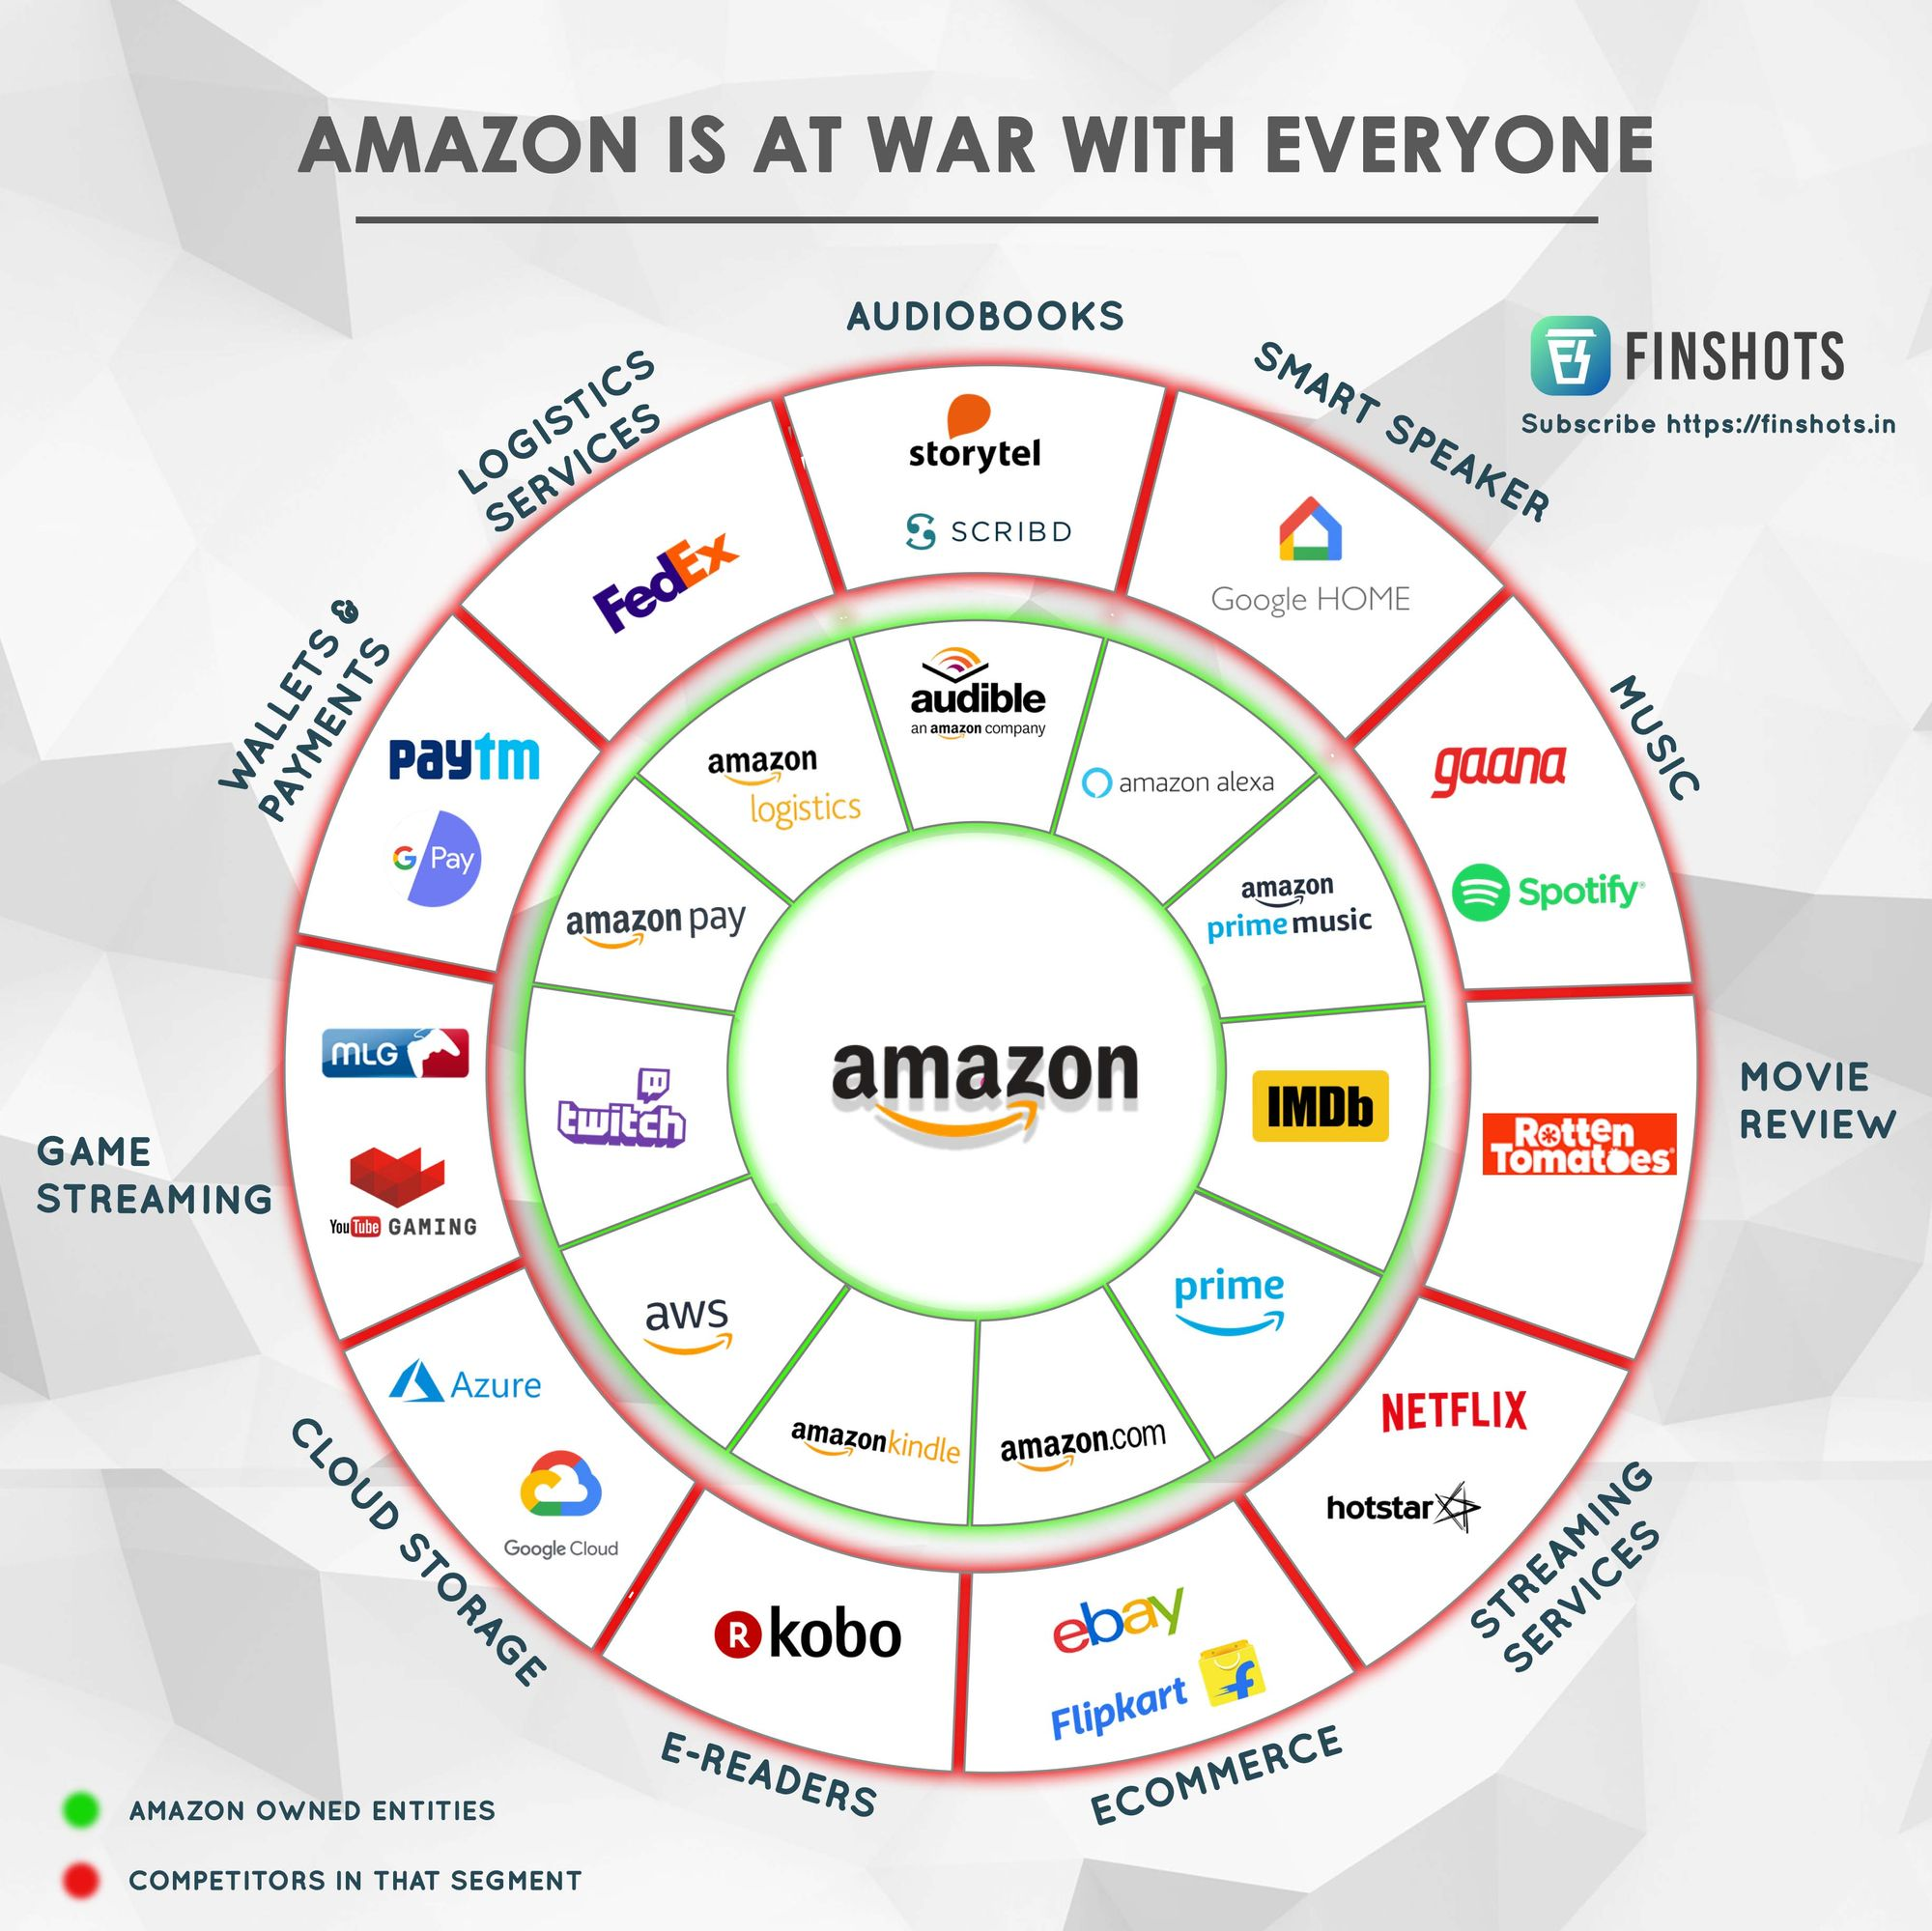 Amazon is at war with everyone